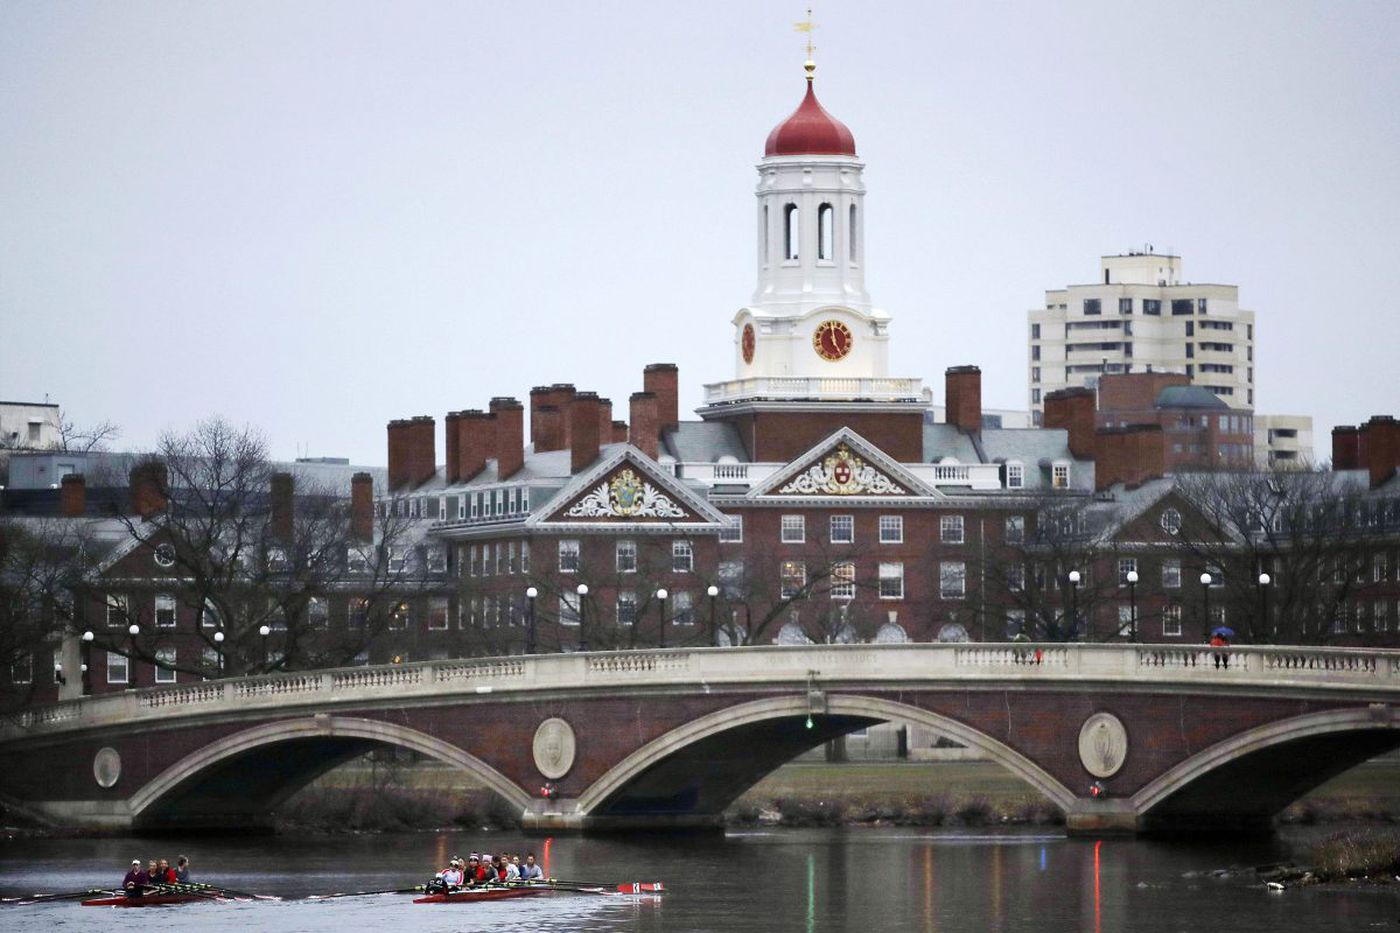 I'm in Penn's Facebook meme group. Harvard was right to rescind acceptances